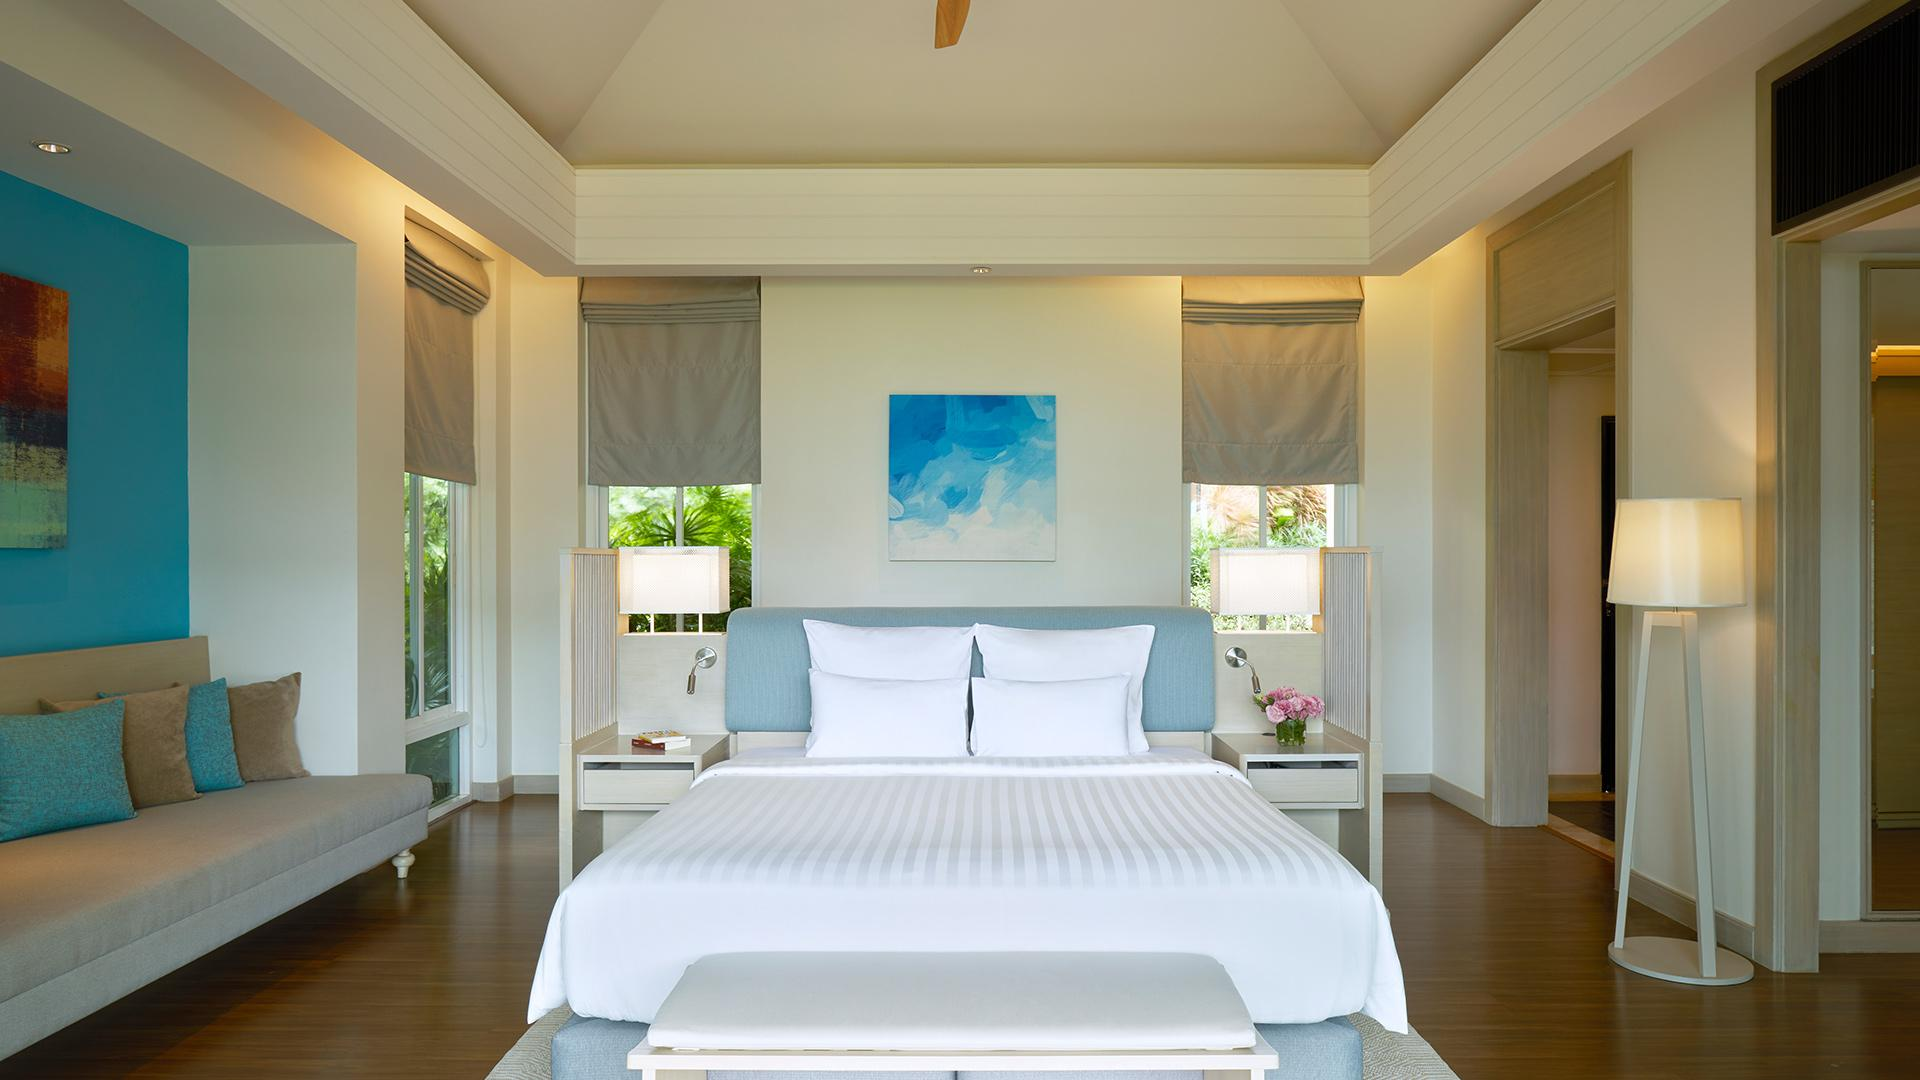 Pool Villa image 1 at Pullman Phuket Panwa Beach Resort by Amphoe Mueang Phuket, Chang Wat Phuket, Thailand